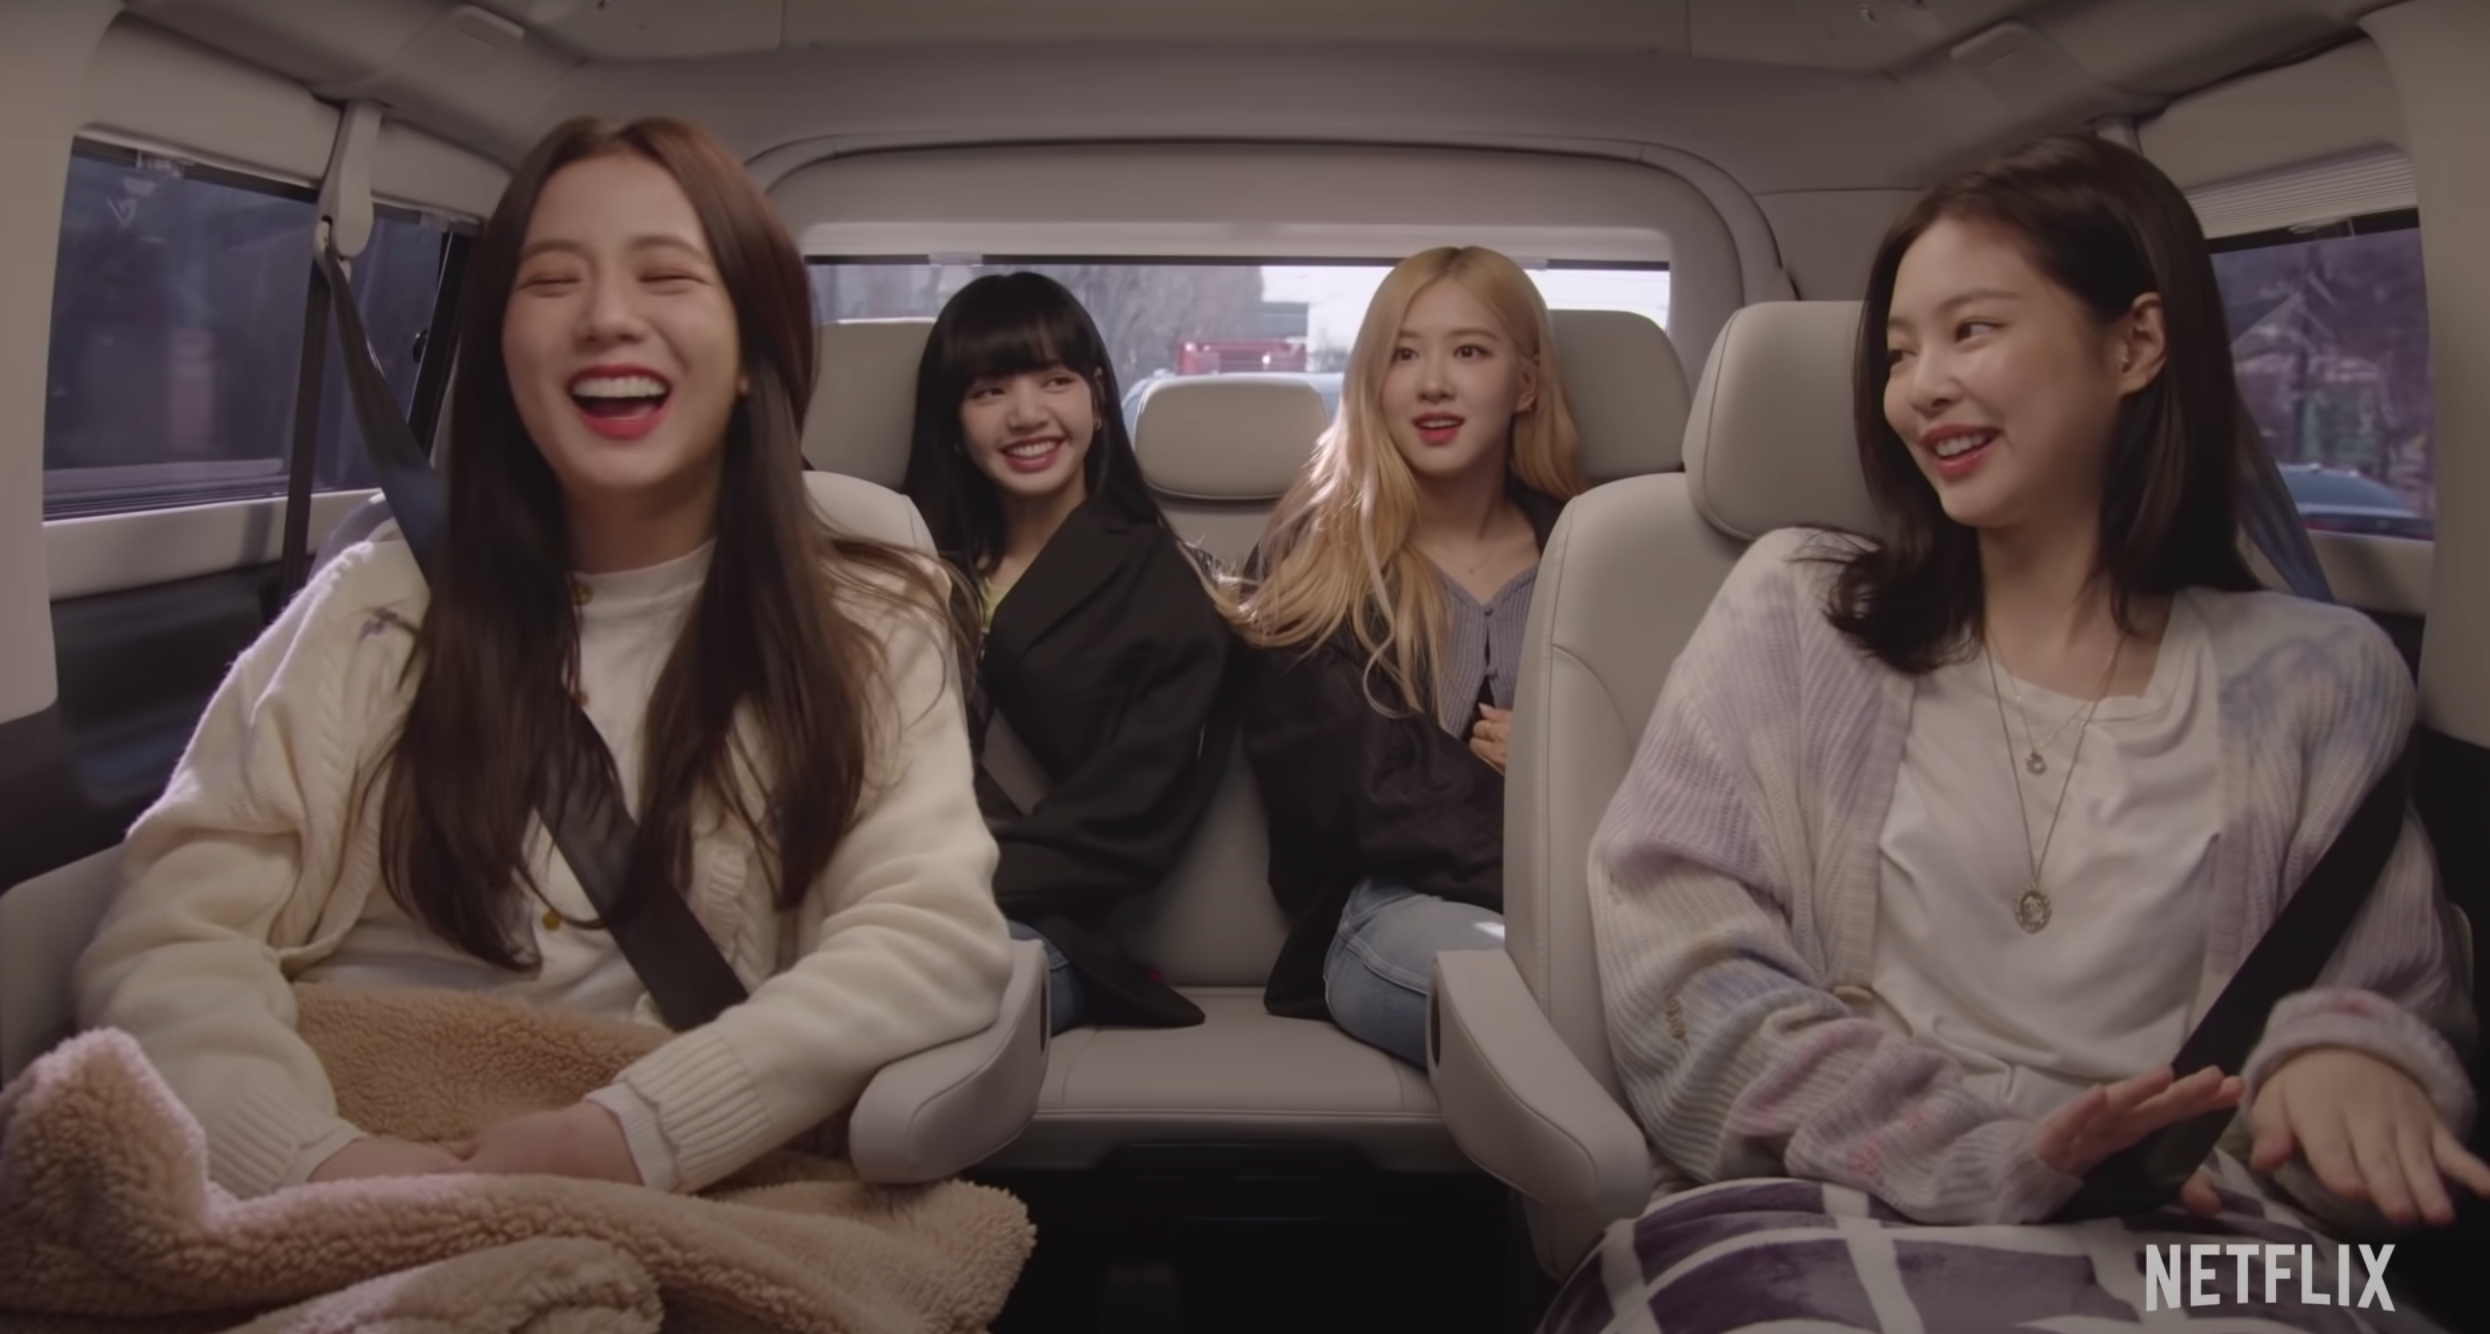 BLACKPINK: Light Up the Sky on Netflix (2020)